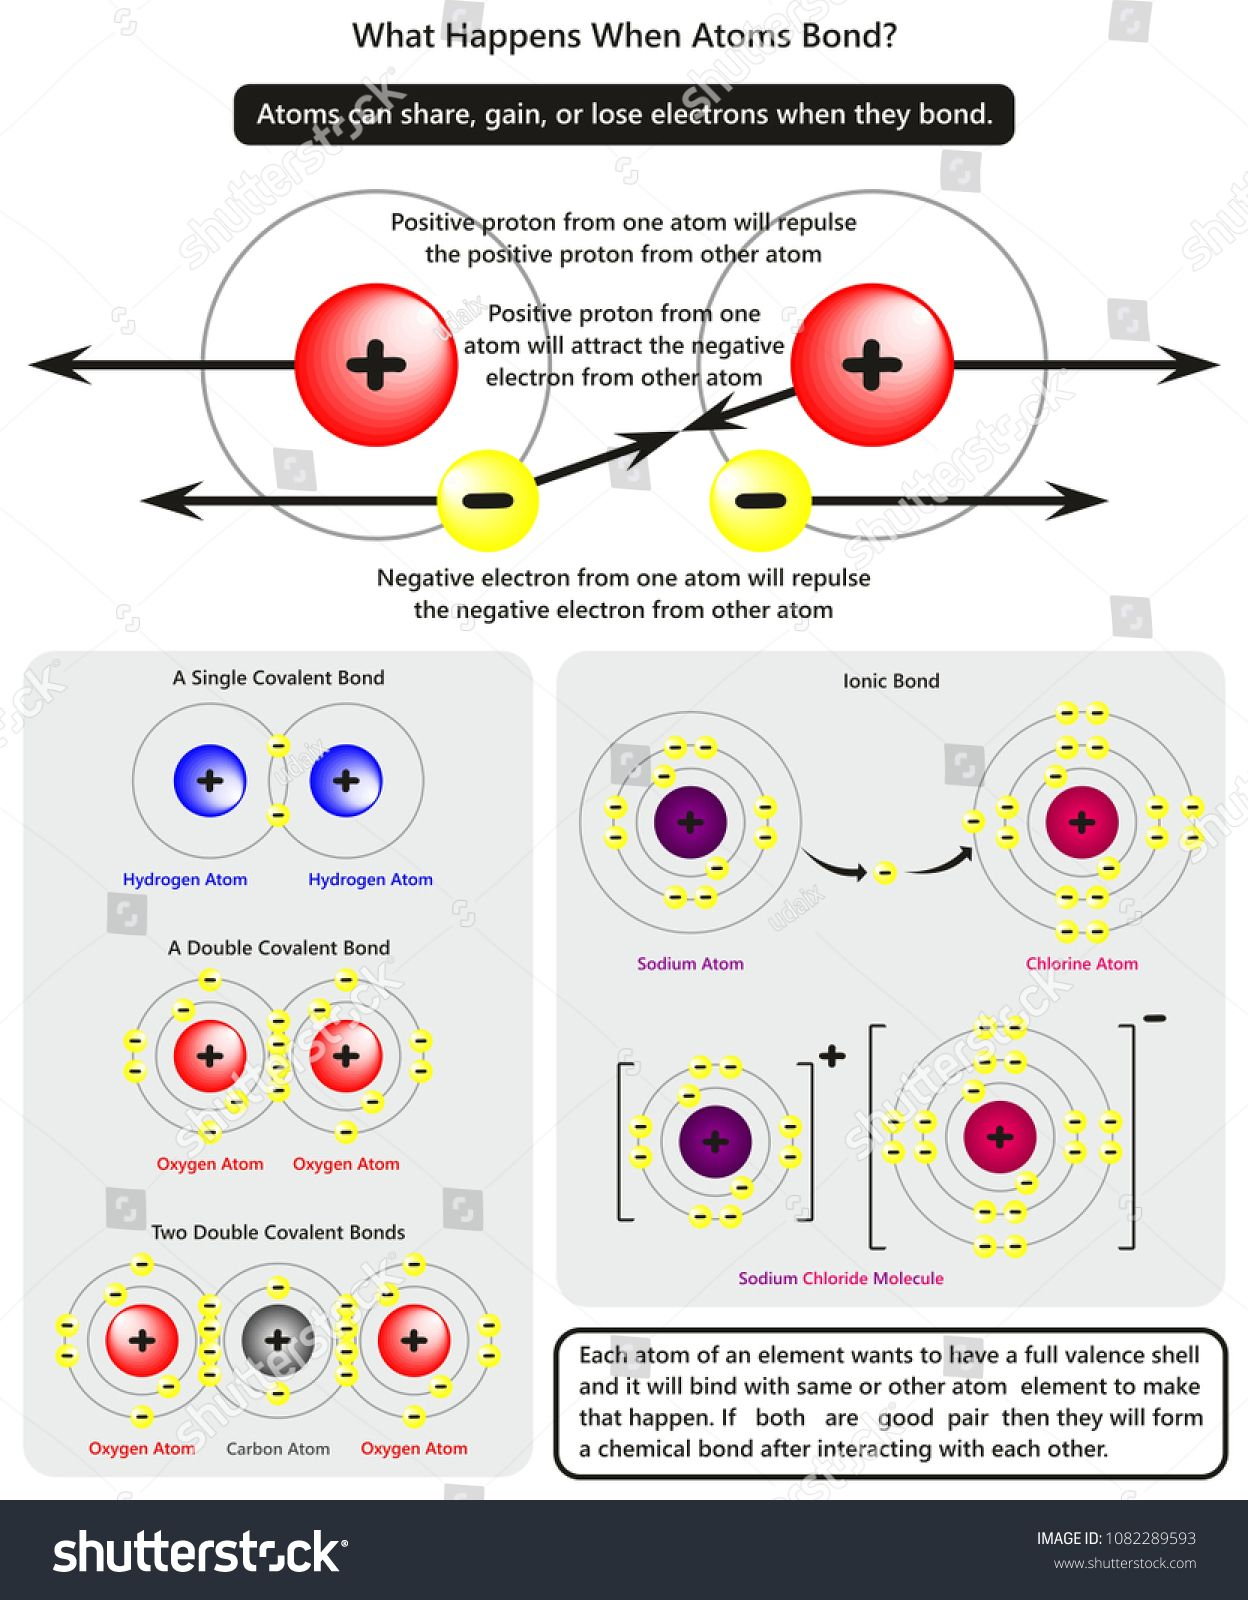 What Happens When Atoms Bond Infographic Diagram Showing How